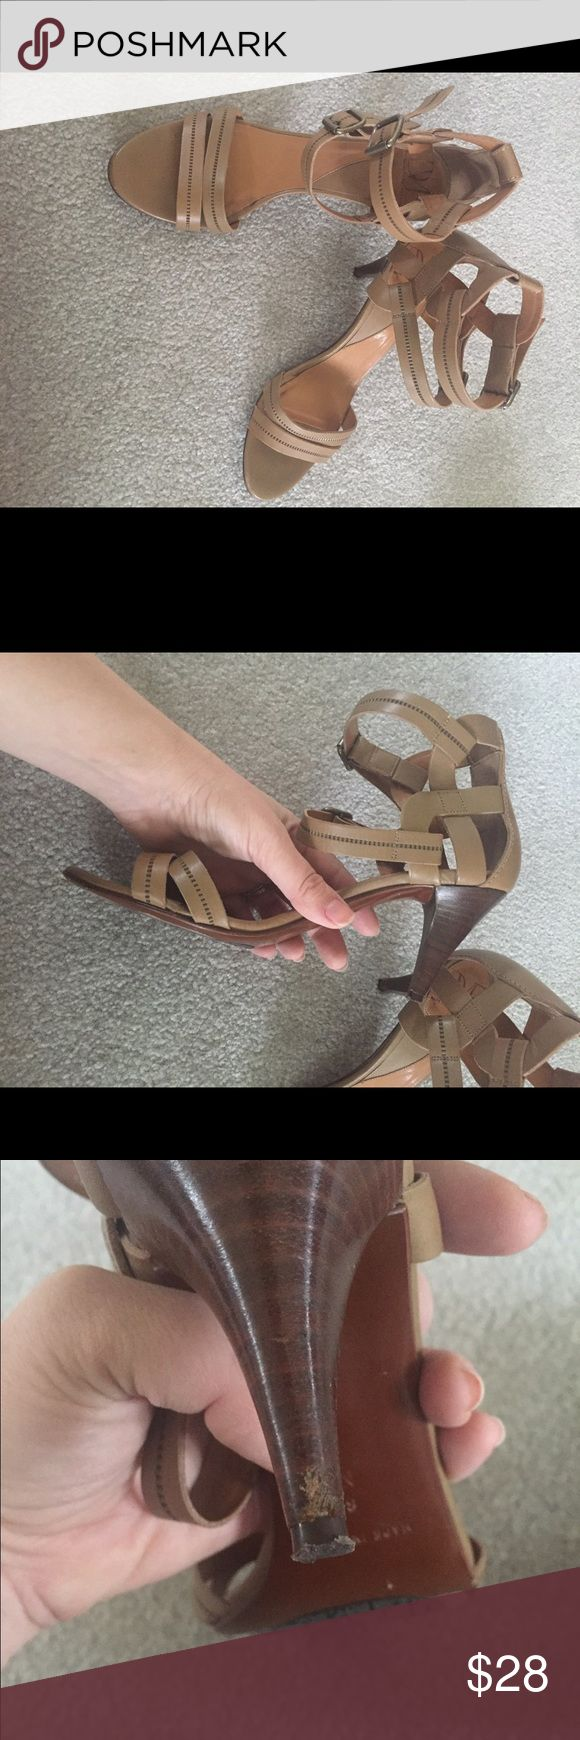 Diane Von Furstenberg Neutral Strappy Sandals Gorgeous neutral sandal strappy heels from Diane Von Furstenberg. They are a size 8, and have little wear other than to the heels as pictured! Perfect with jeans or a gorgeous dress. #neutral #dvf #dianevonfurstenberg Diane von Furstenberg Shoes